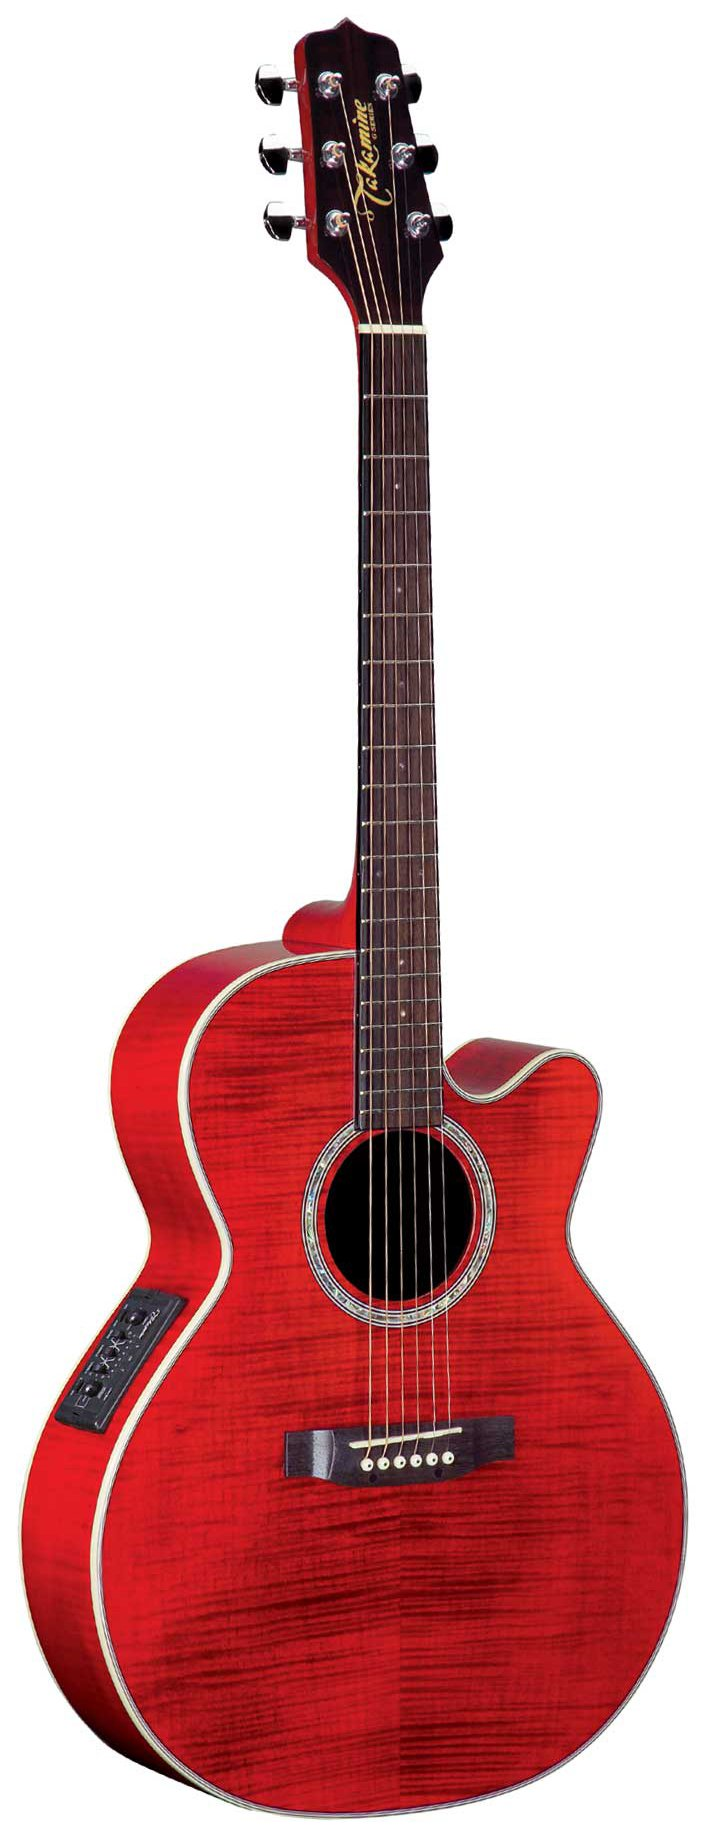 Takamine acoustic/electric-p43881h-a52d2e41be7080d31754c59f21b456ee-jpg